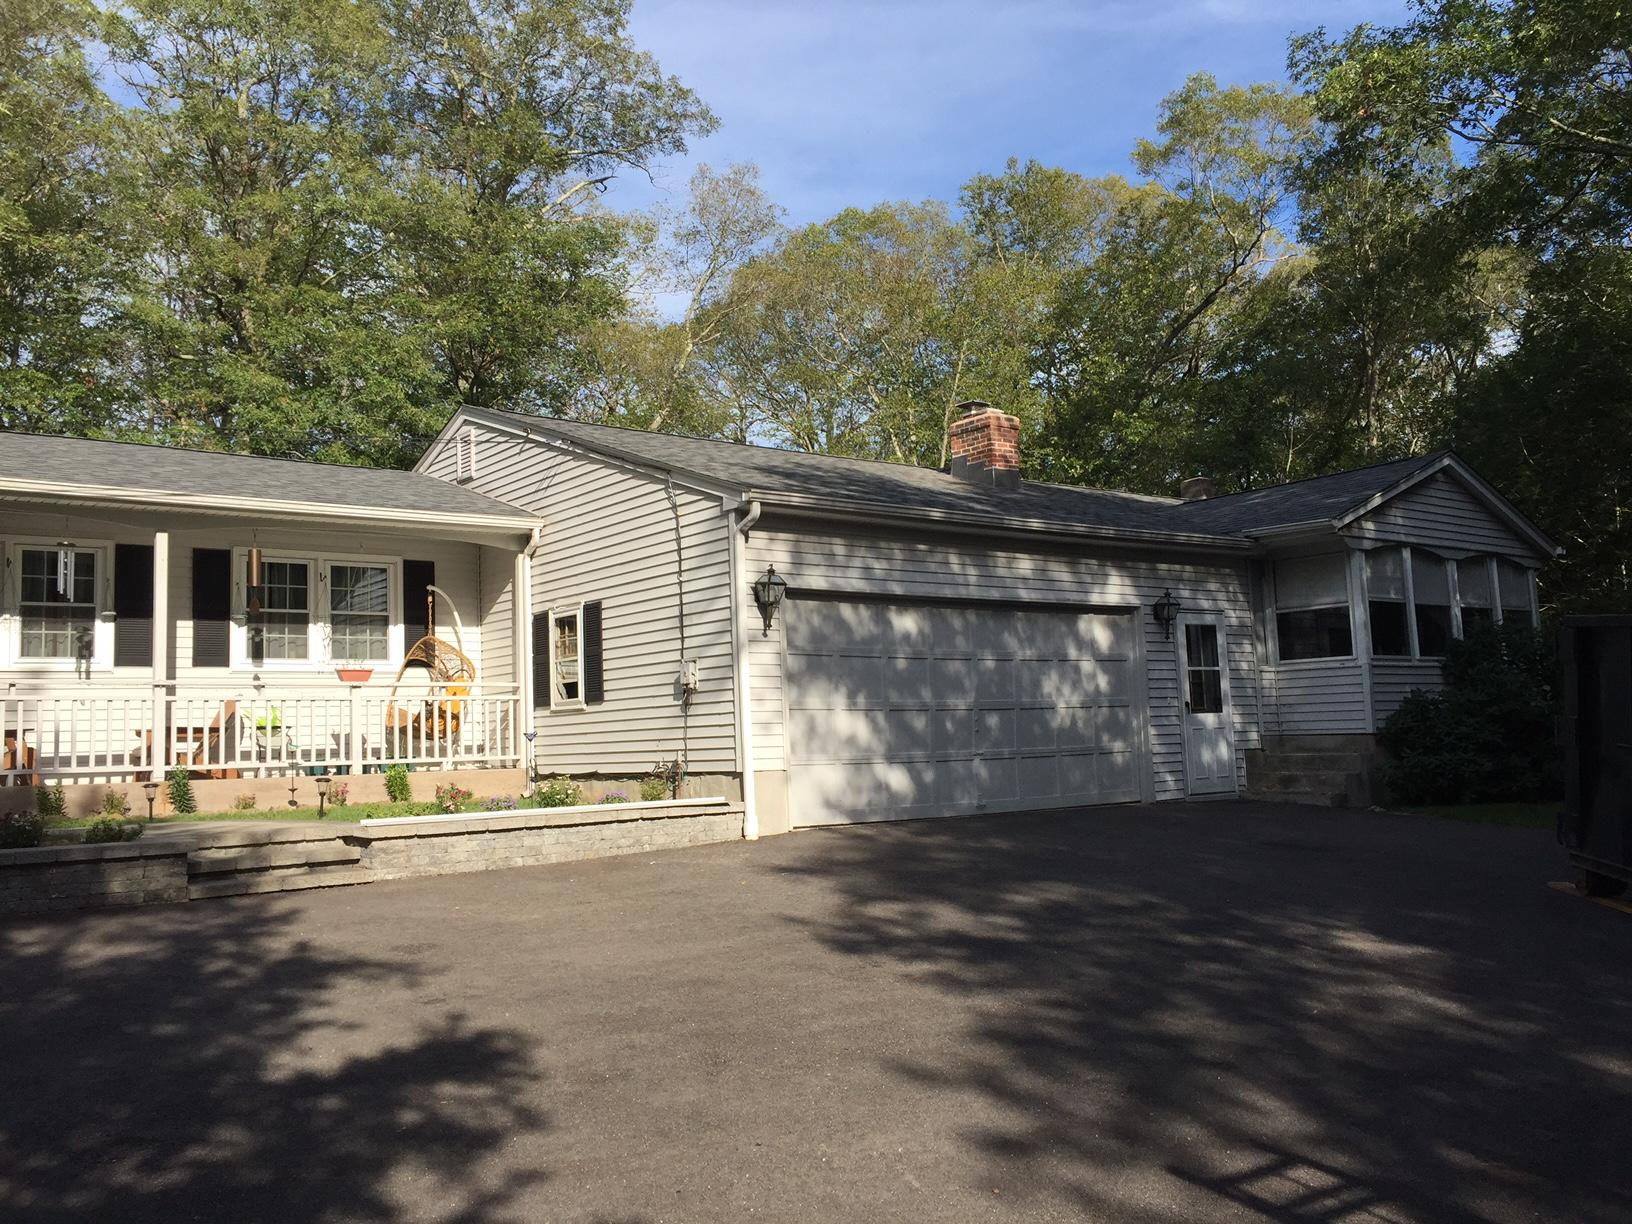 Roof Replacement Service in Marlborough, CT - After Photo